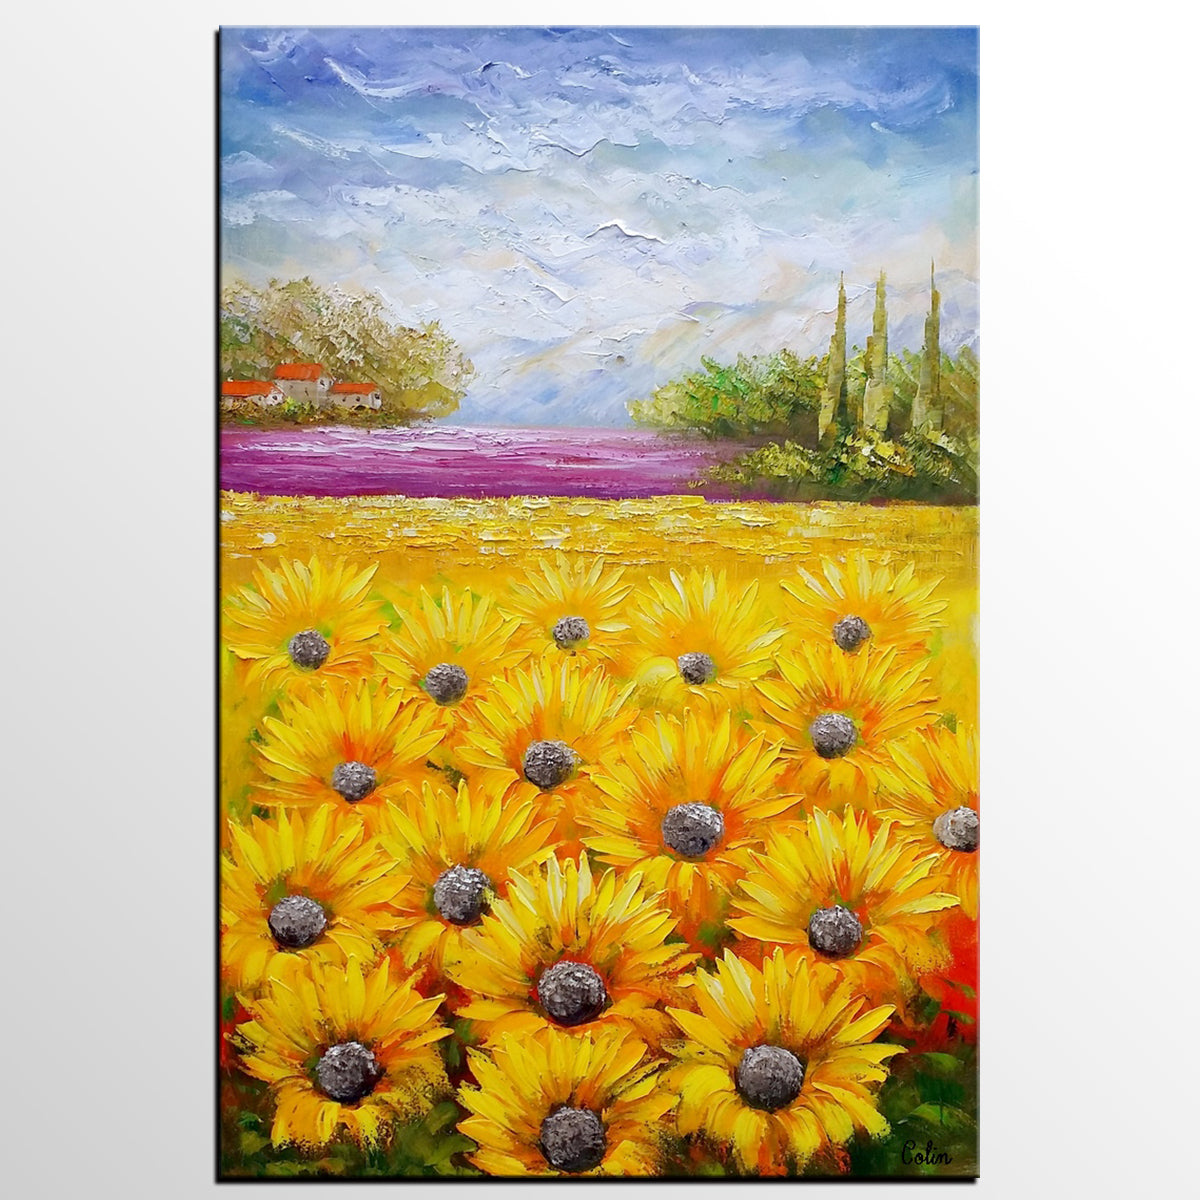 Heavy Texture Art, Abstract Art, Abstract Painting, Canvas Oil Painting, Landscape Painting, Large Art, Original Art, Sunflower Painting